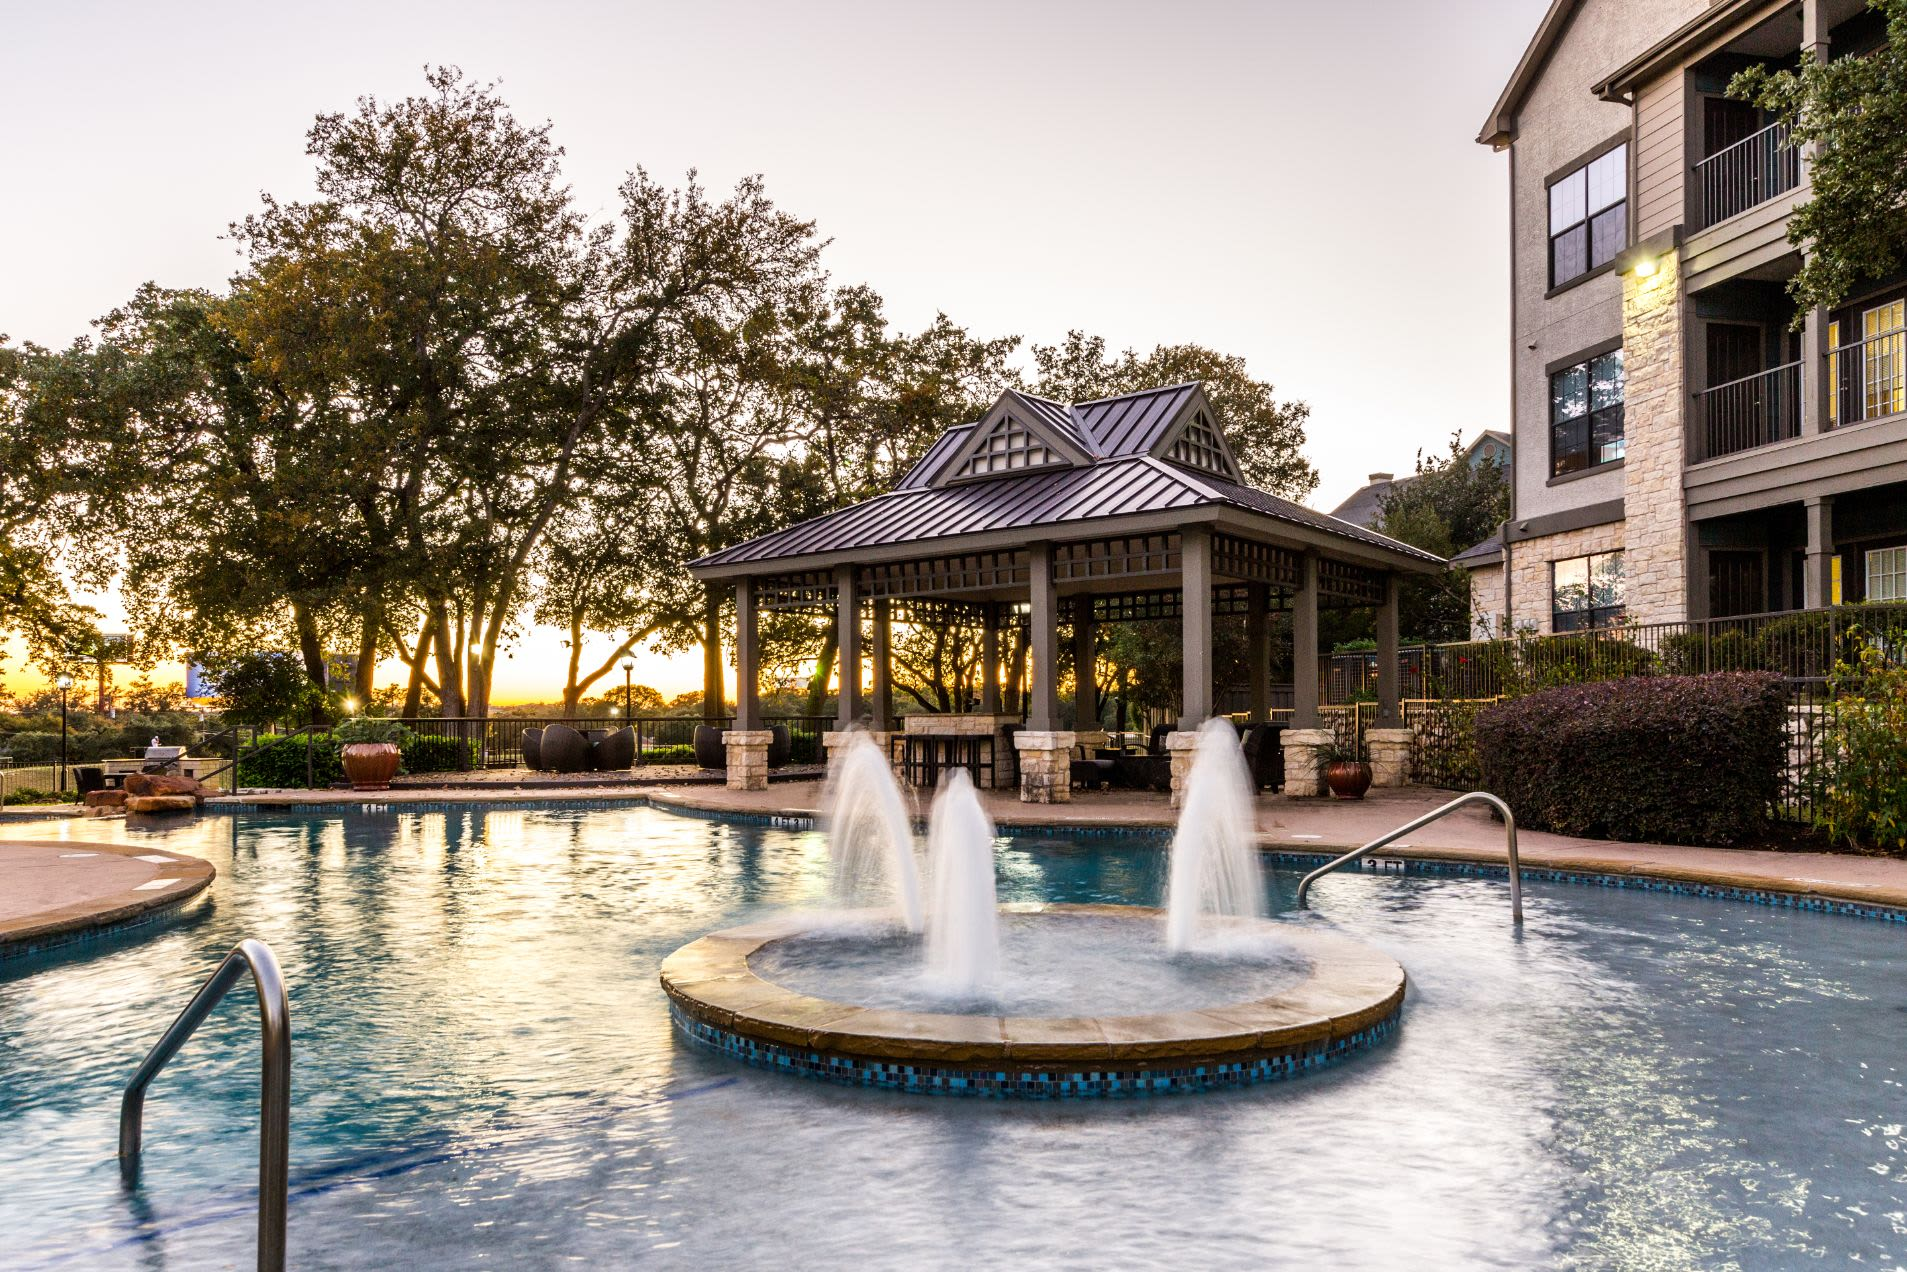 Water fountain in the center of the pool at The Marquis at Brushy Creek in Austin, Texas